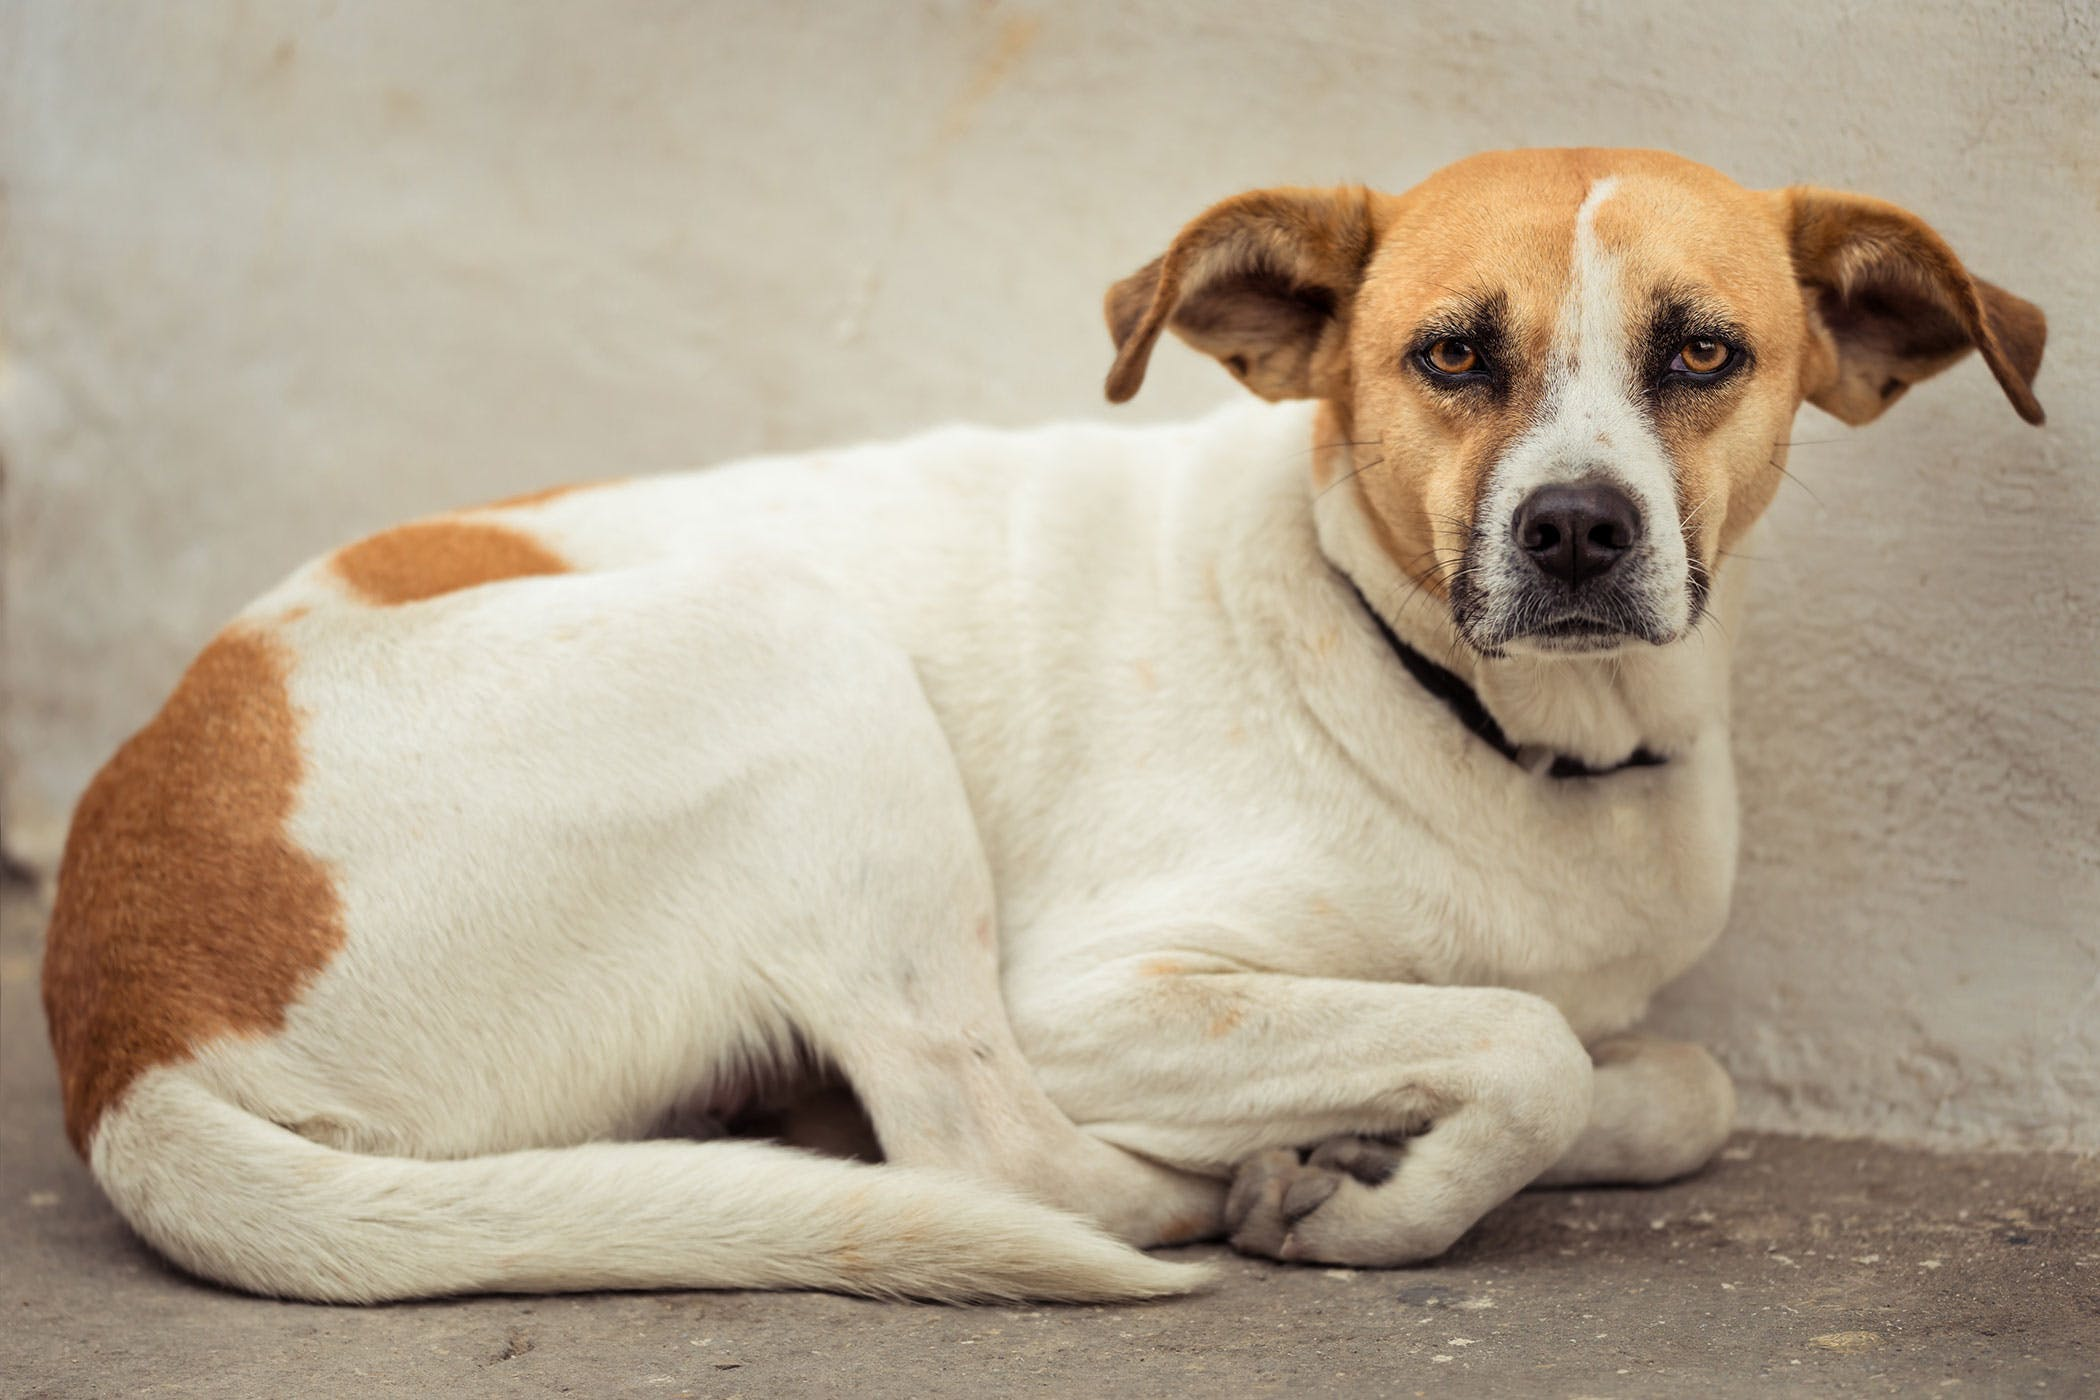 Colonic or Rectal Inflammation in Dogs - Symptoms, Causes